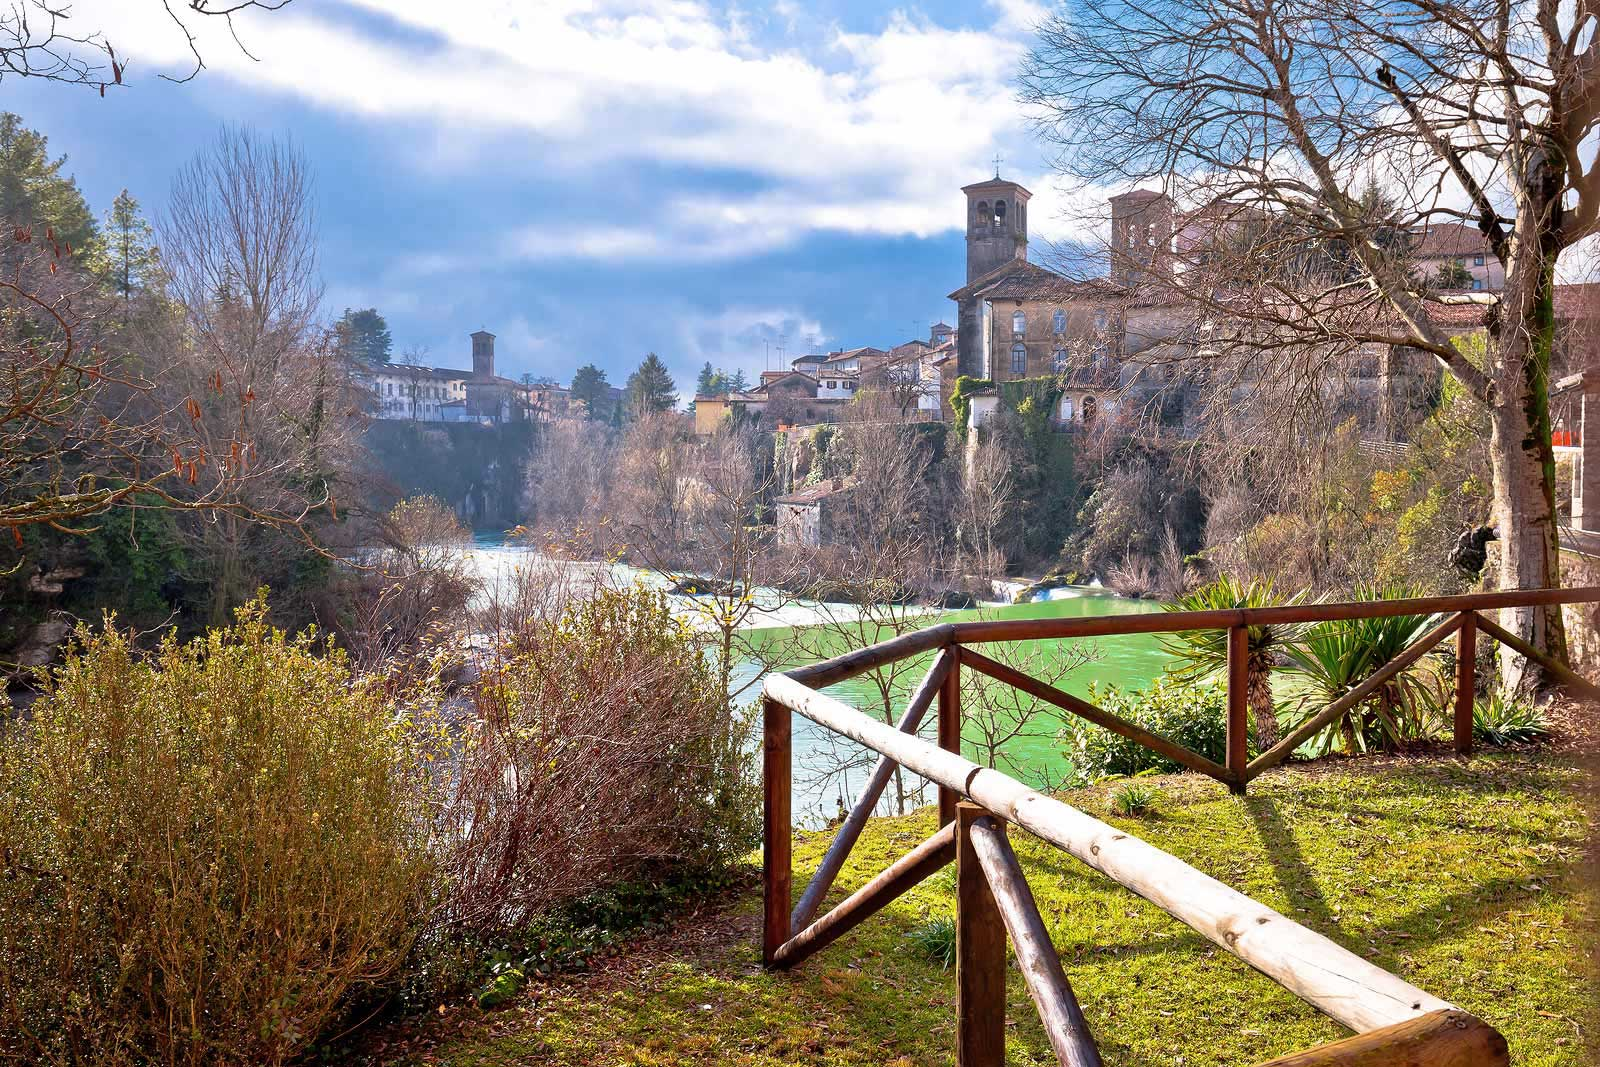 The city of Cividale del Friuli was founded by Julius Caesar and called Forum Iulii (Julius' Forum). Many of his legionnaires retired in the area and established vineyards. Today, Cividale del Friuli is surrounded by the Friuli Colli Orientali DOC.